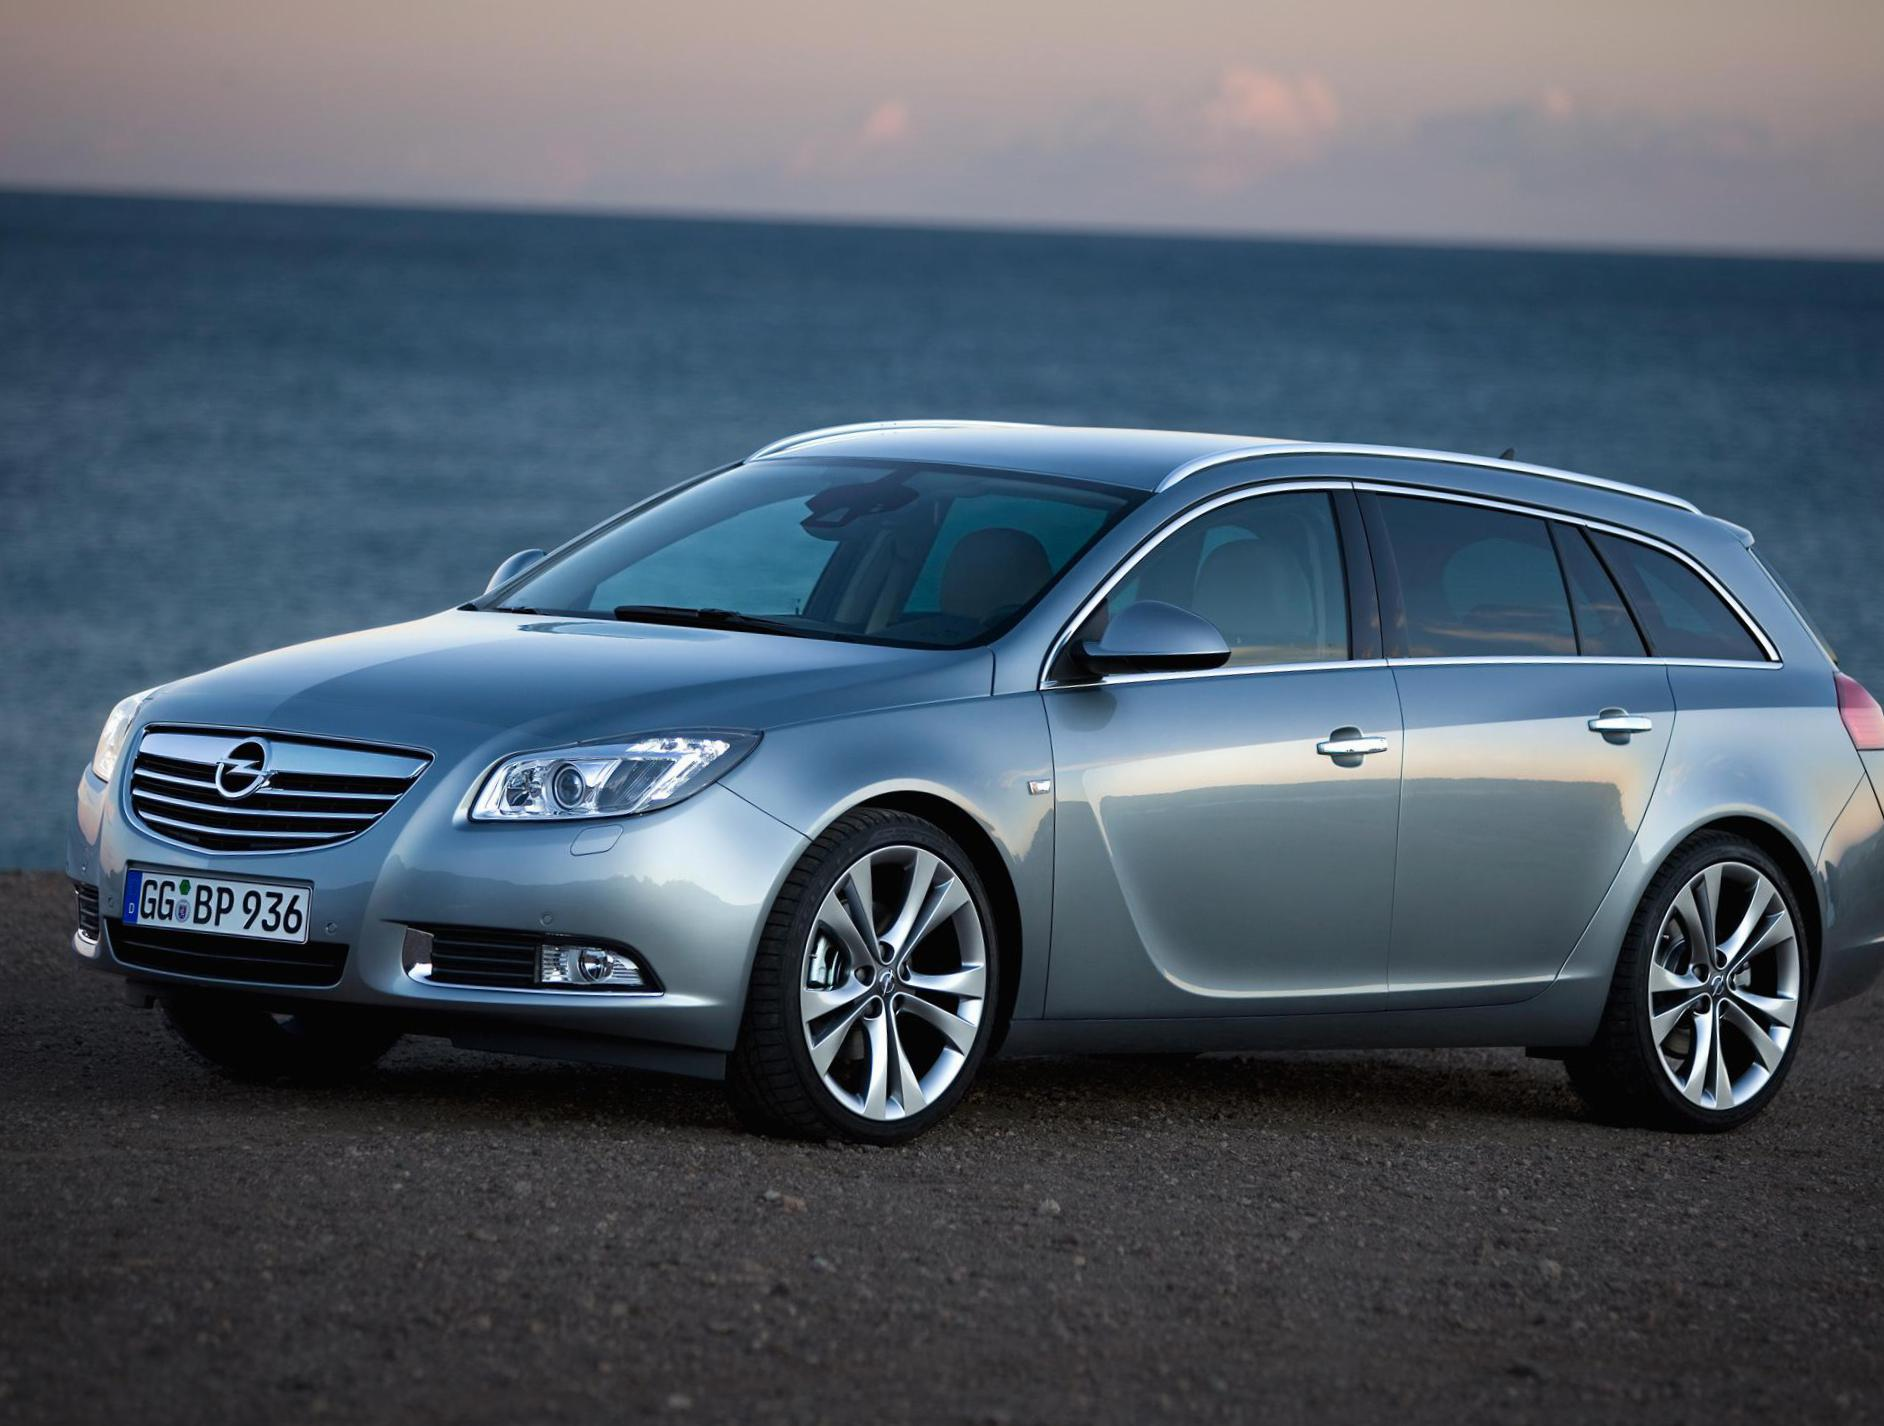 Opel Insignia Sports Tourer parts 2013